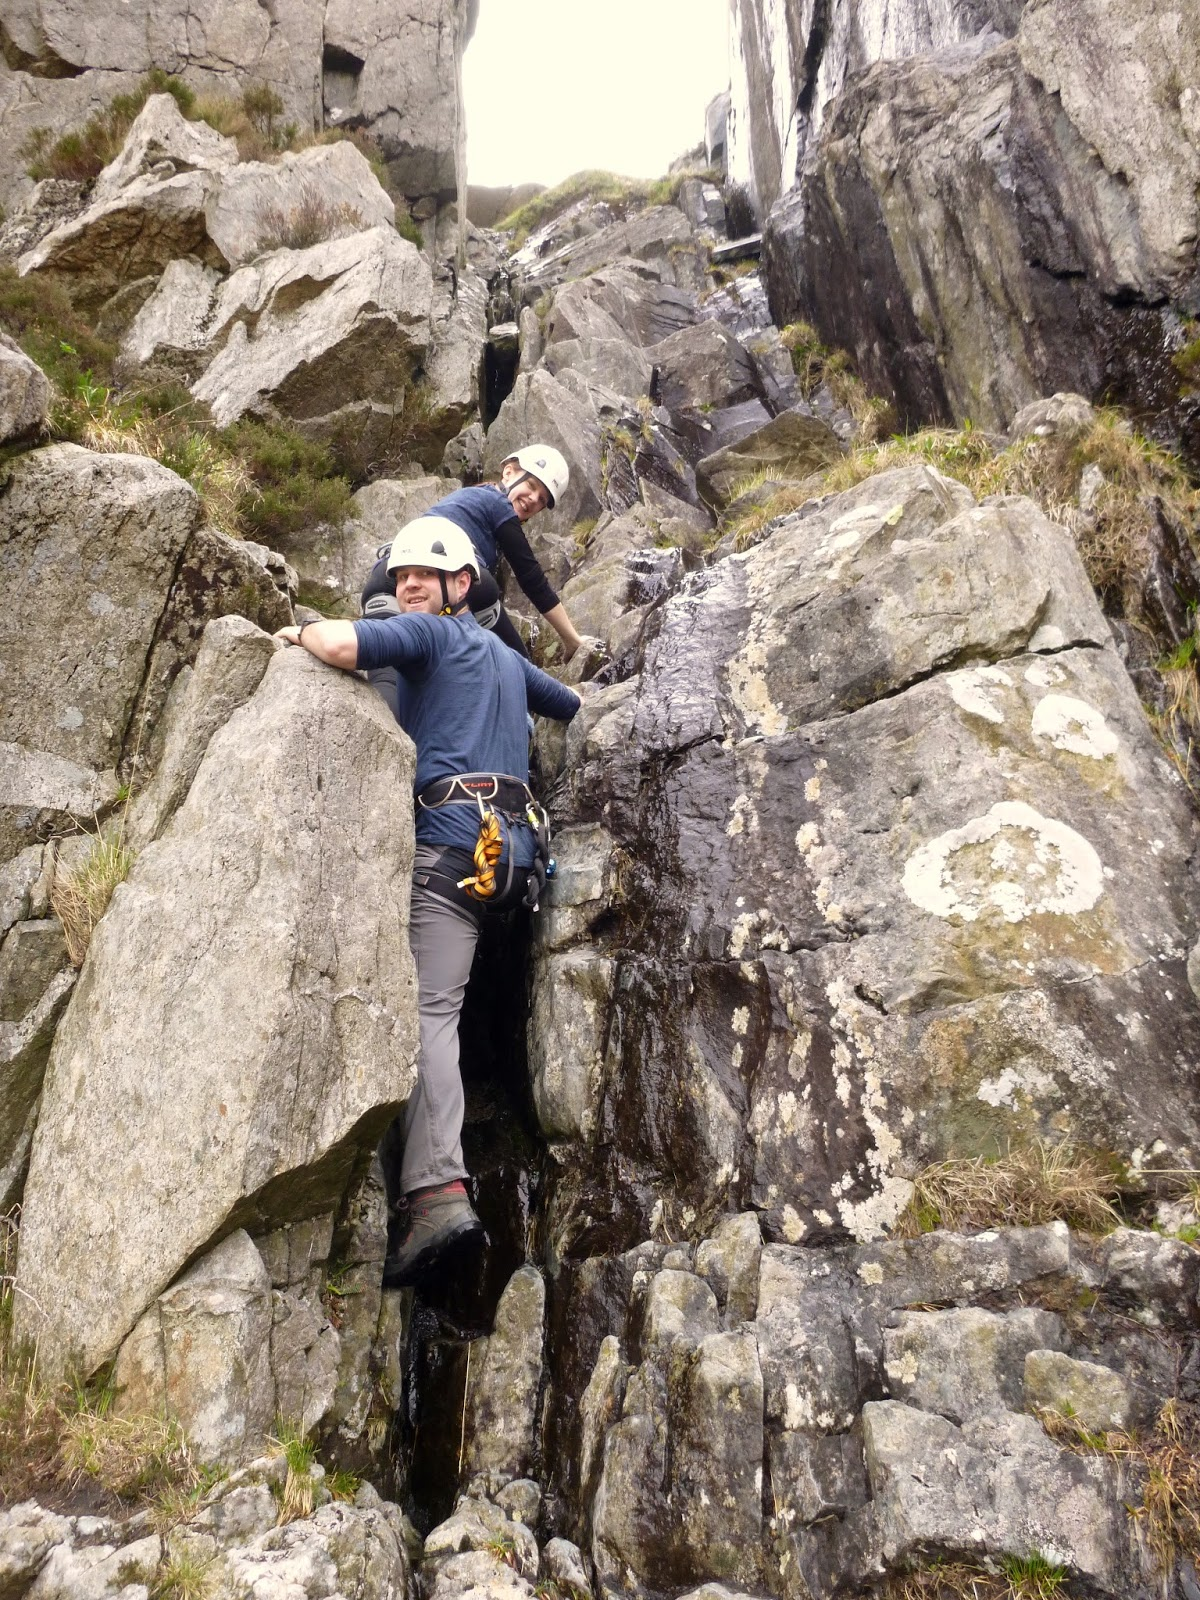 Scrambling Skills Training Courses In North Wales May 23rd 24th 2015